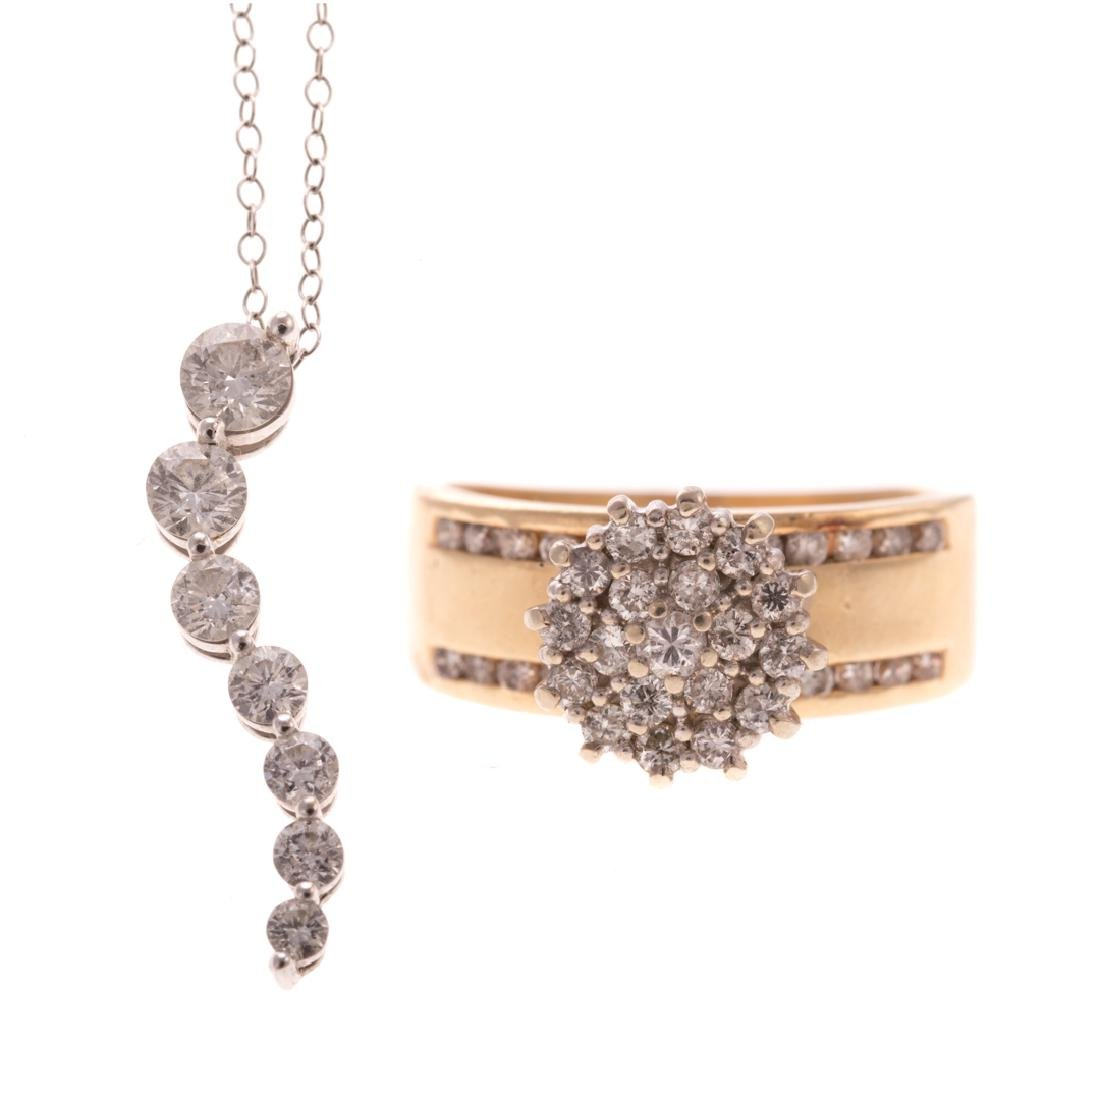 A Lady's Diamond Pendant and Cluster Ring in Gold